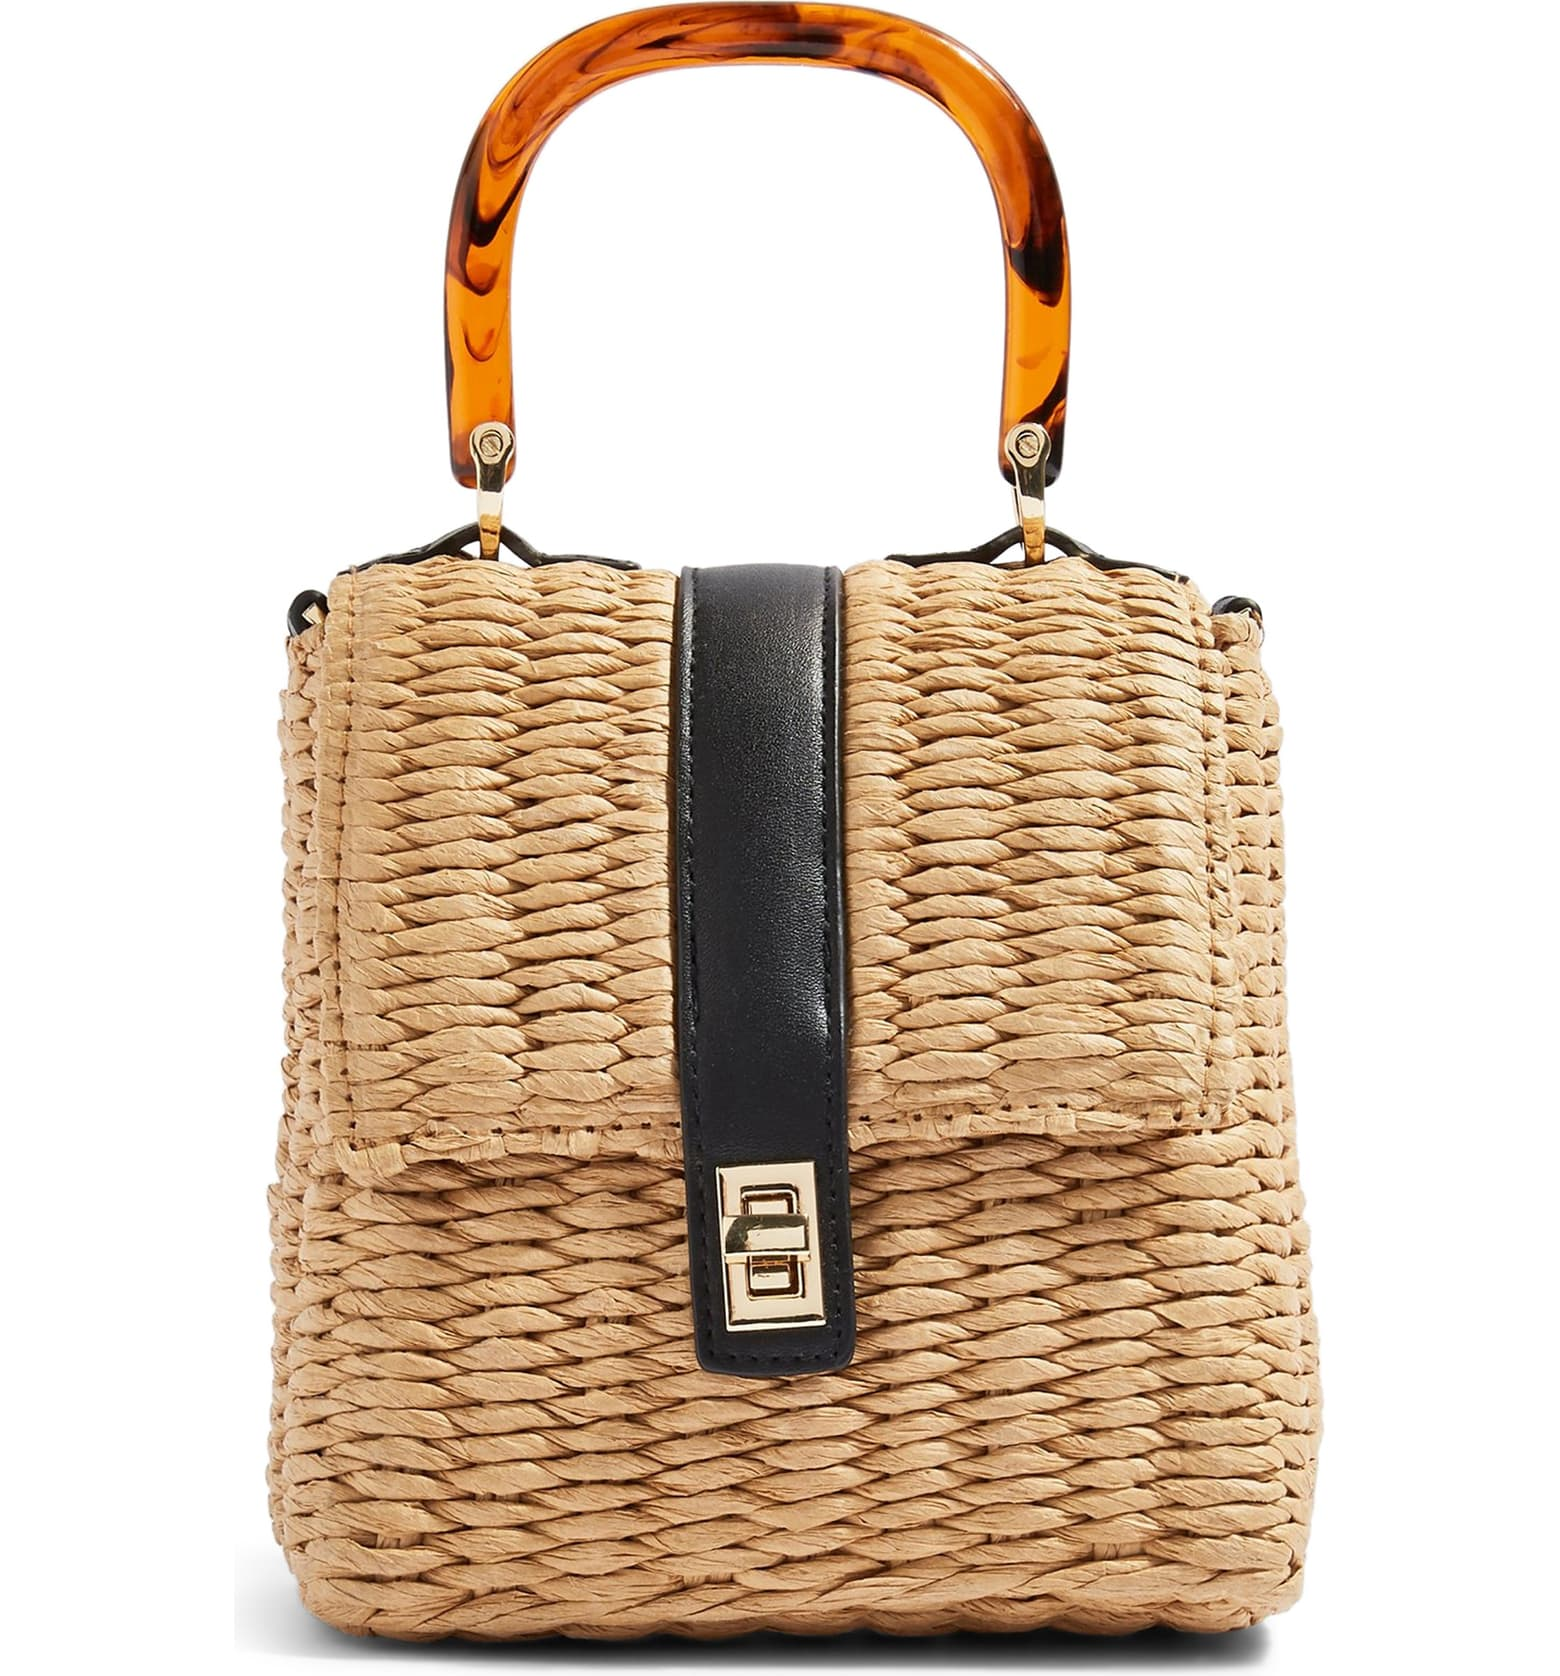 SOO cute and surprisingly holds more than one would think! Also comes with a removable over-the-shoulder strap!